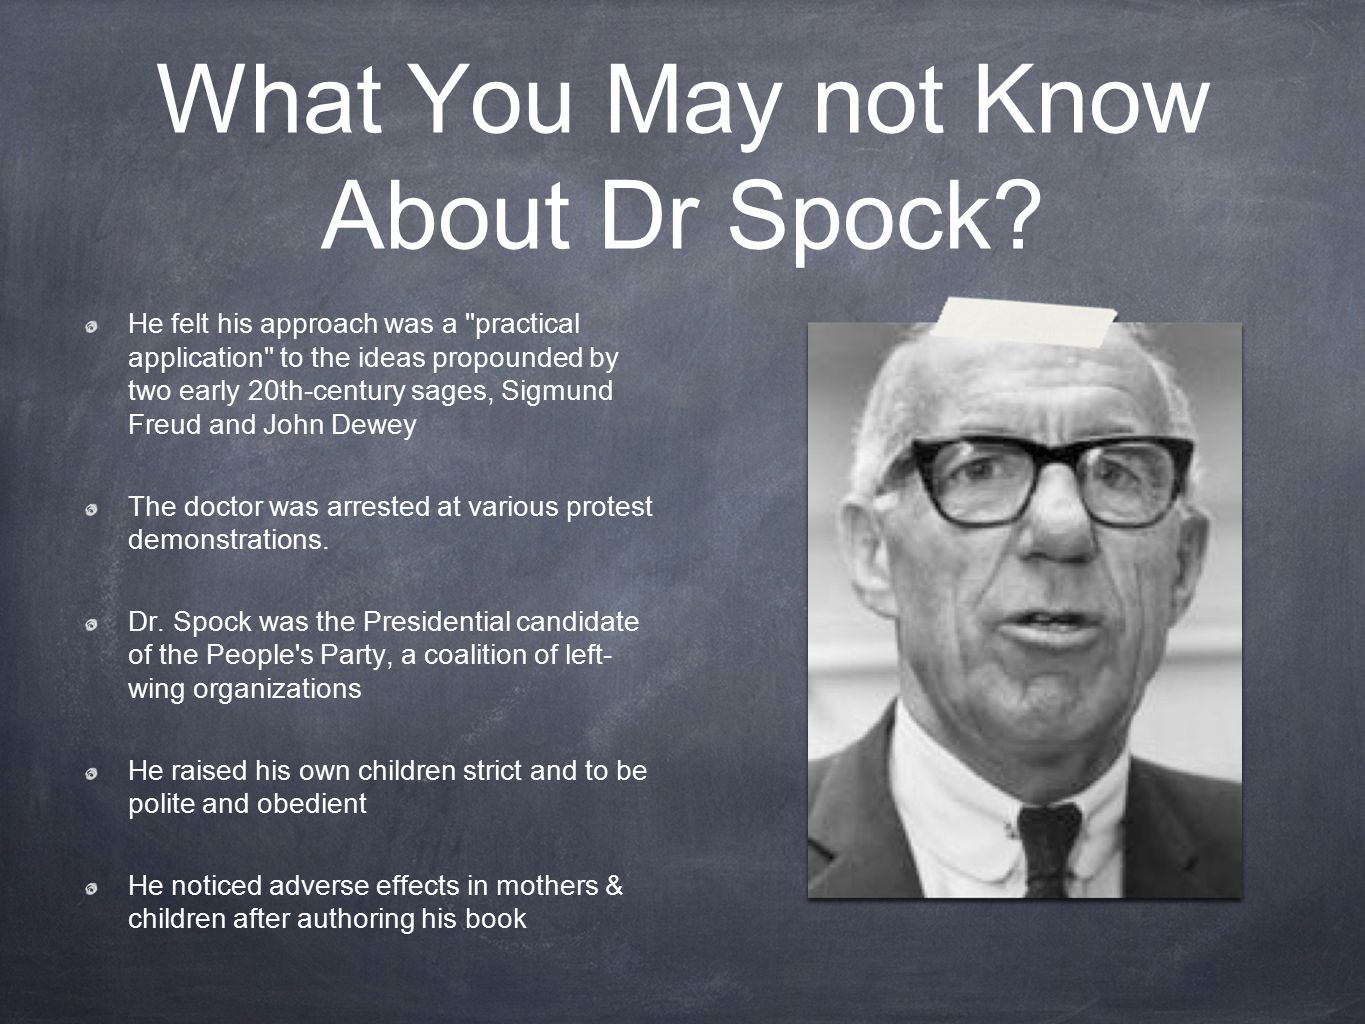 What You May not Know About Dr Spock.